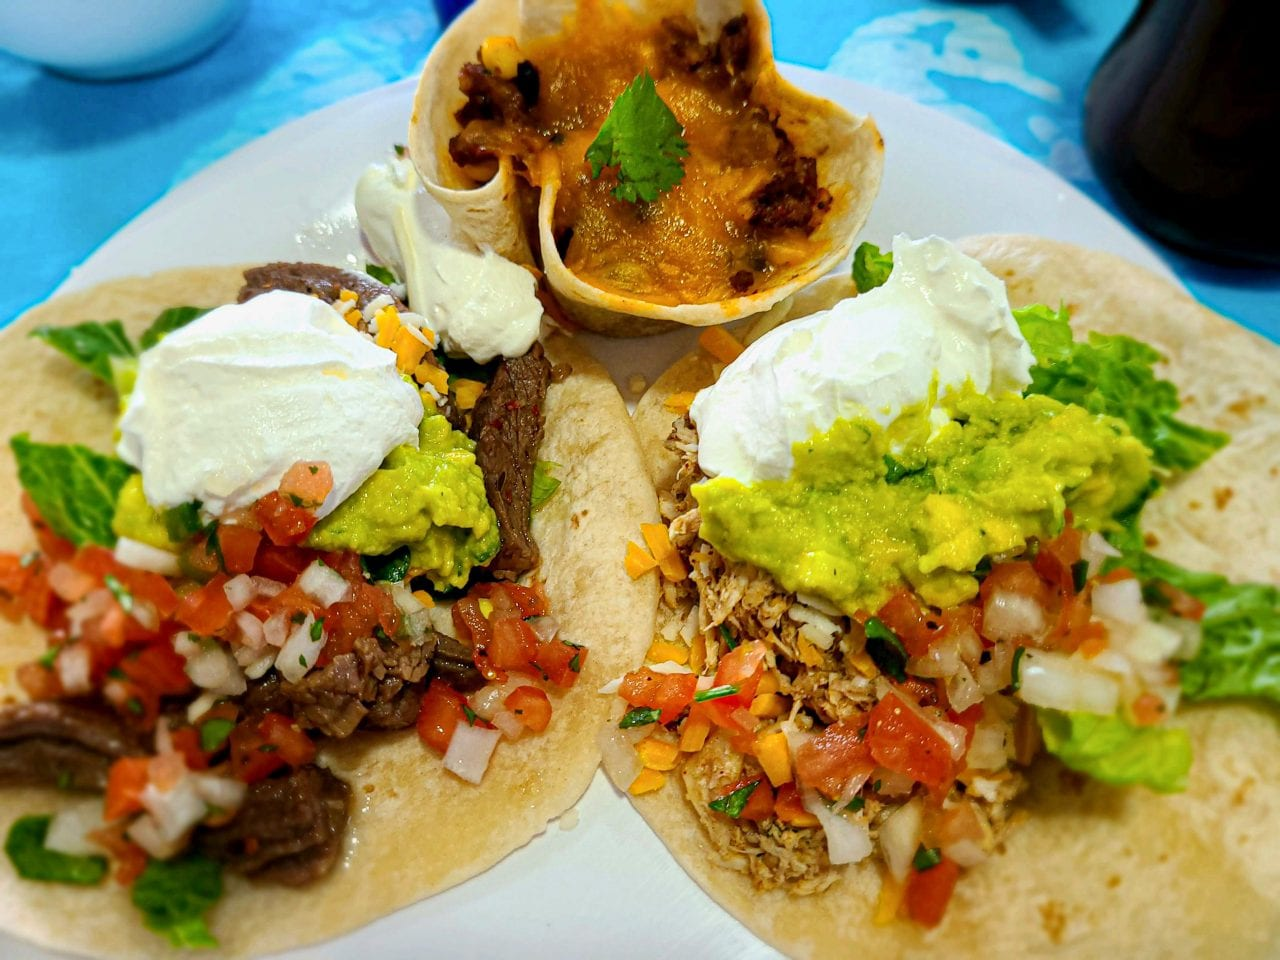 Delectable delights on Taco Tuesday